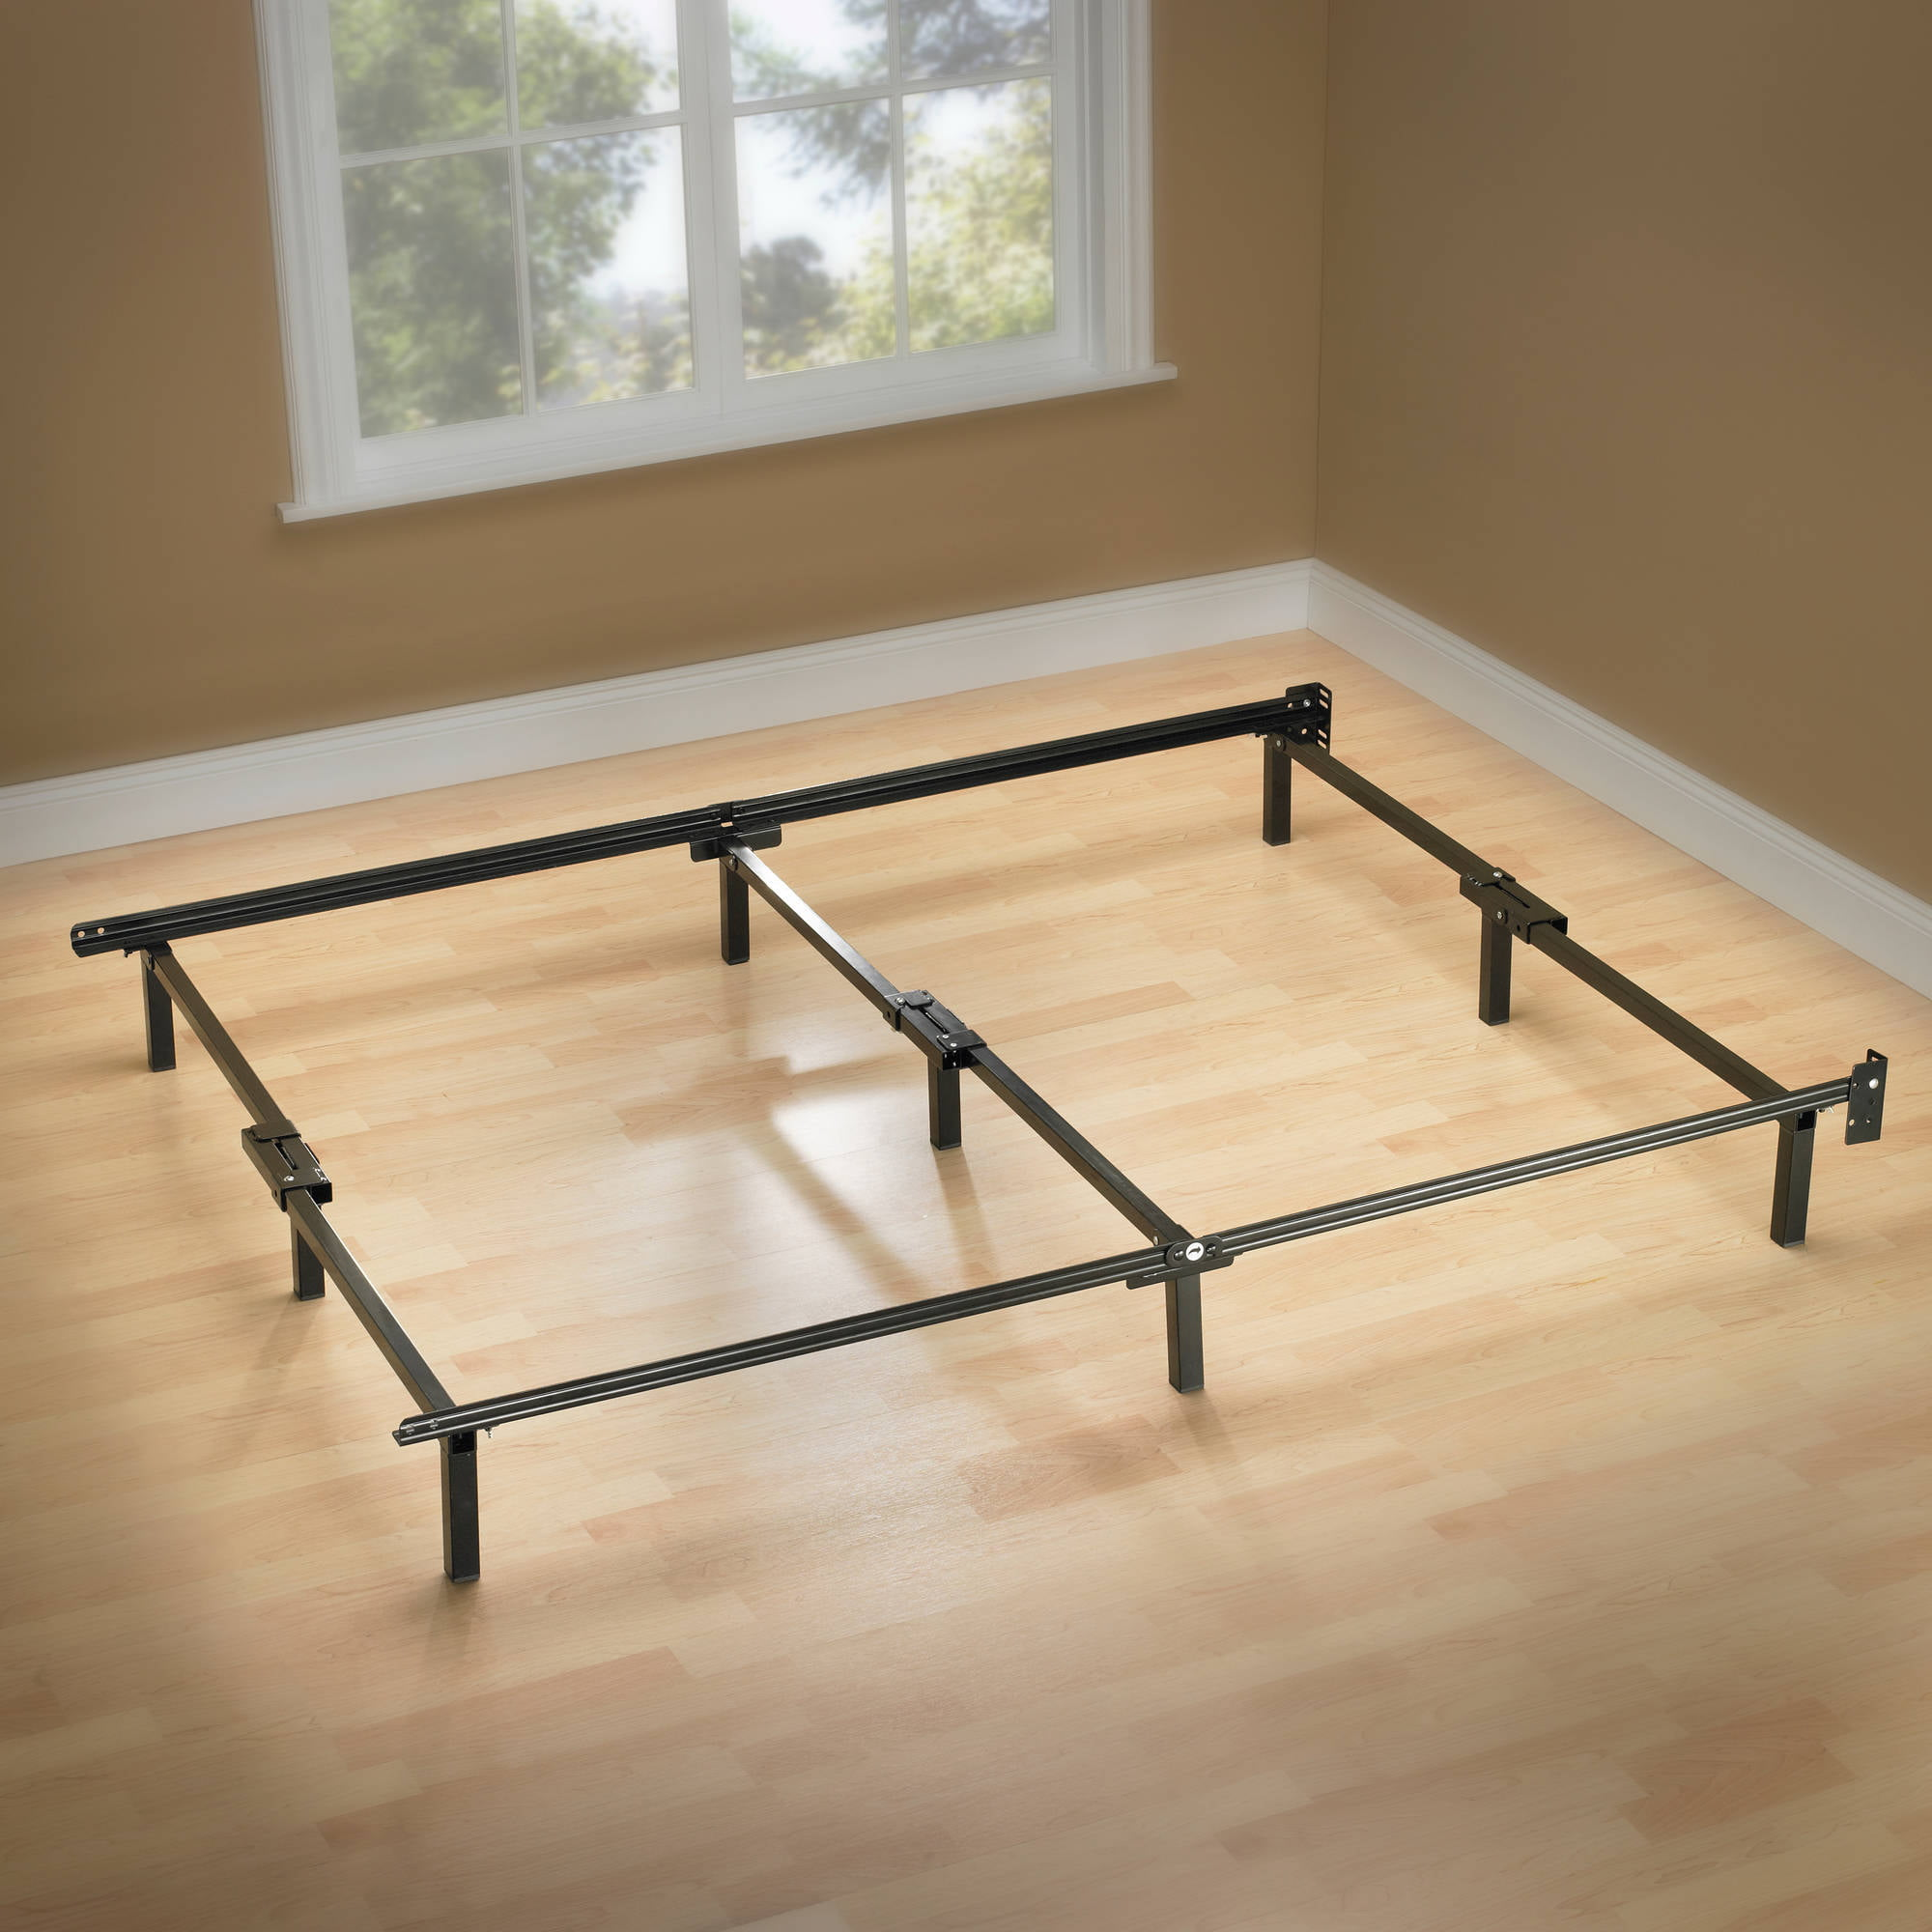 spa sensations 7 low profile adjustable steel bed frame easy no tools assembly multiple sizes walmartcom - Metal Bed Frames